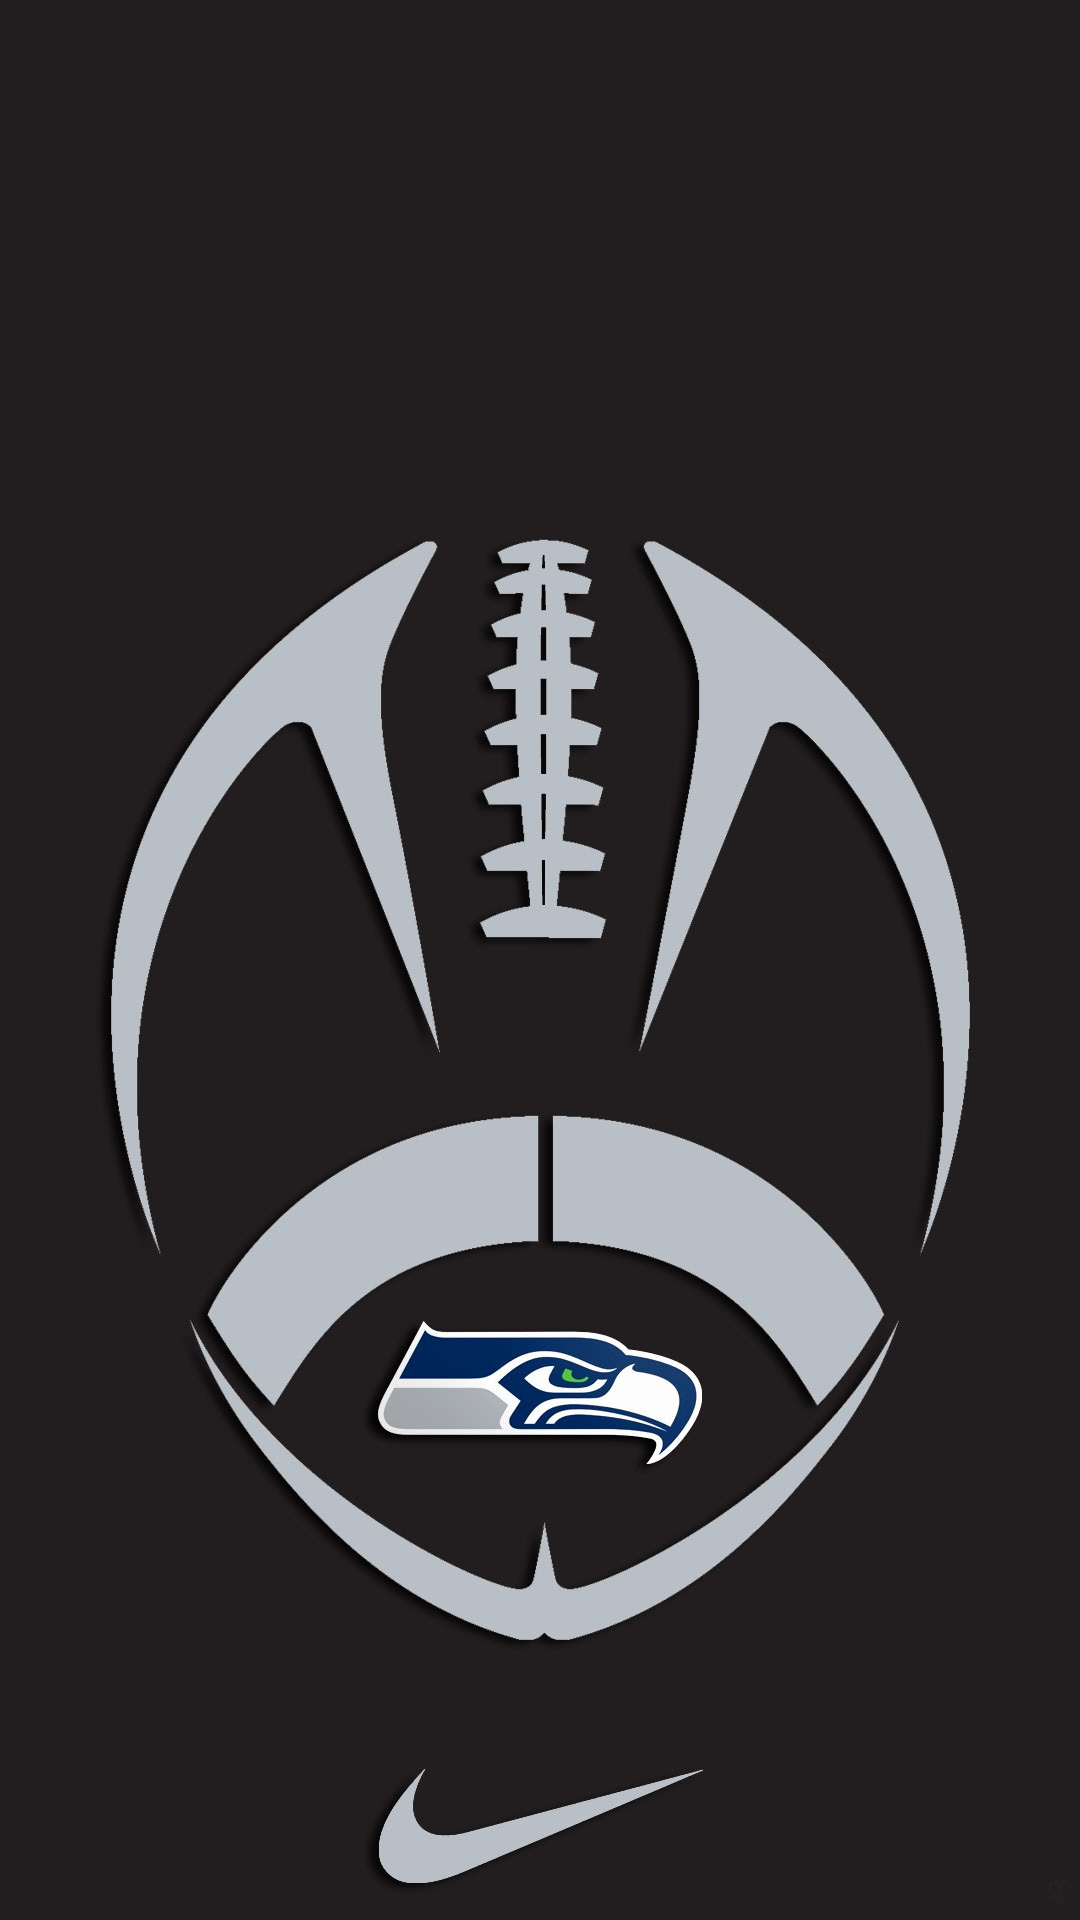 Seattle Seahawks Iphone Wallpaper 75 Images